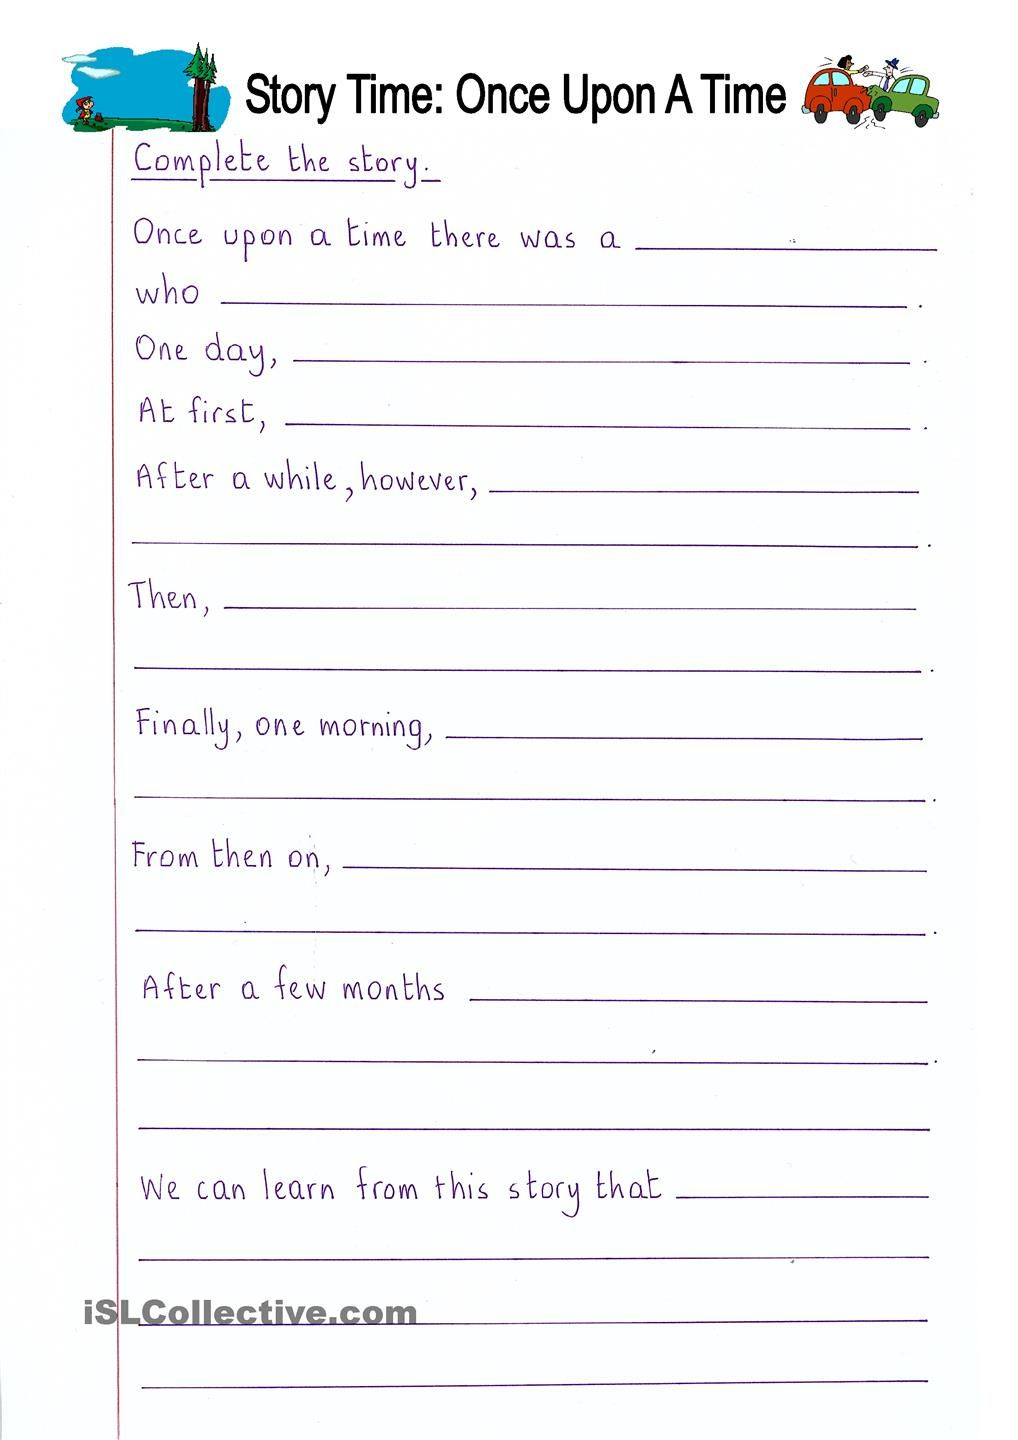 Creative Writing Worksheets For Class 3